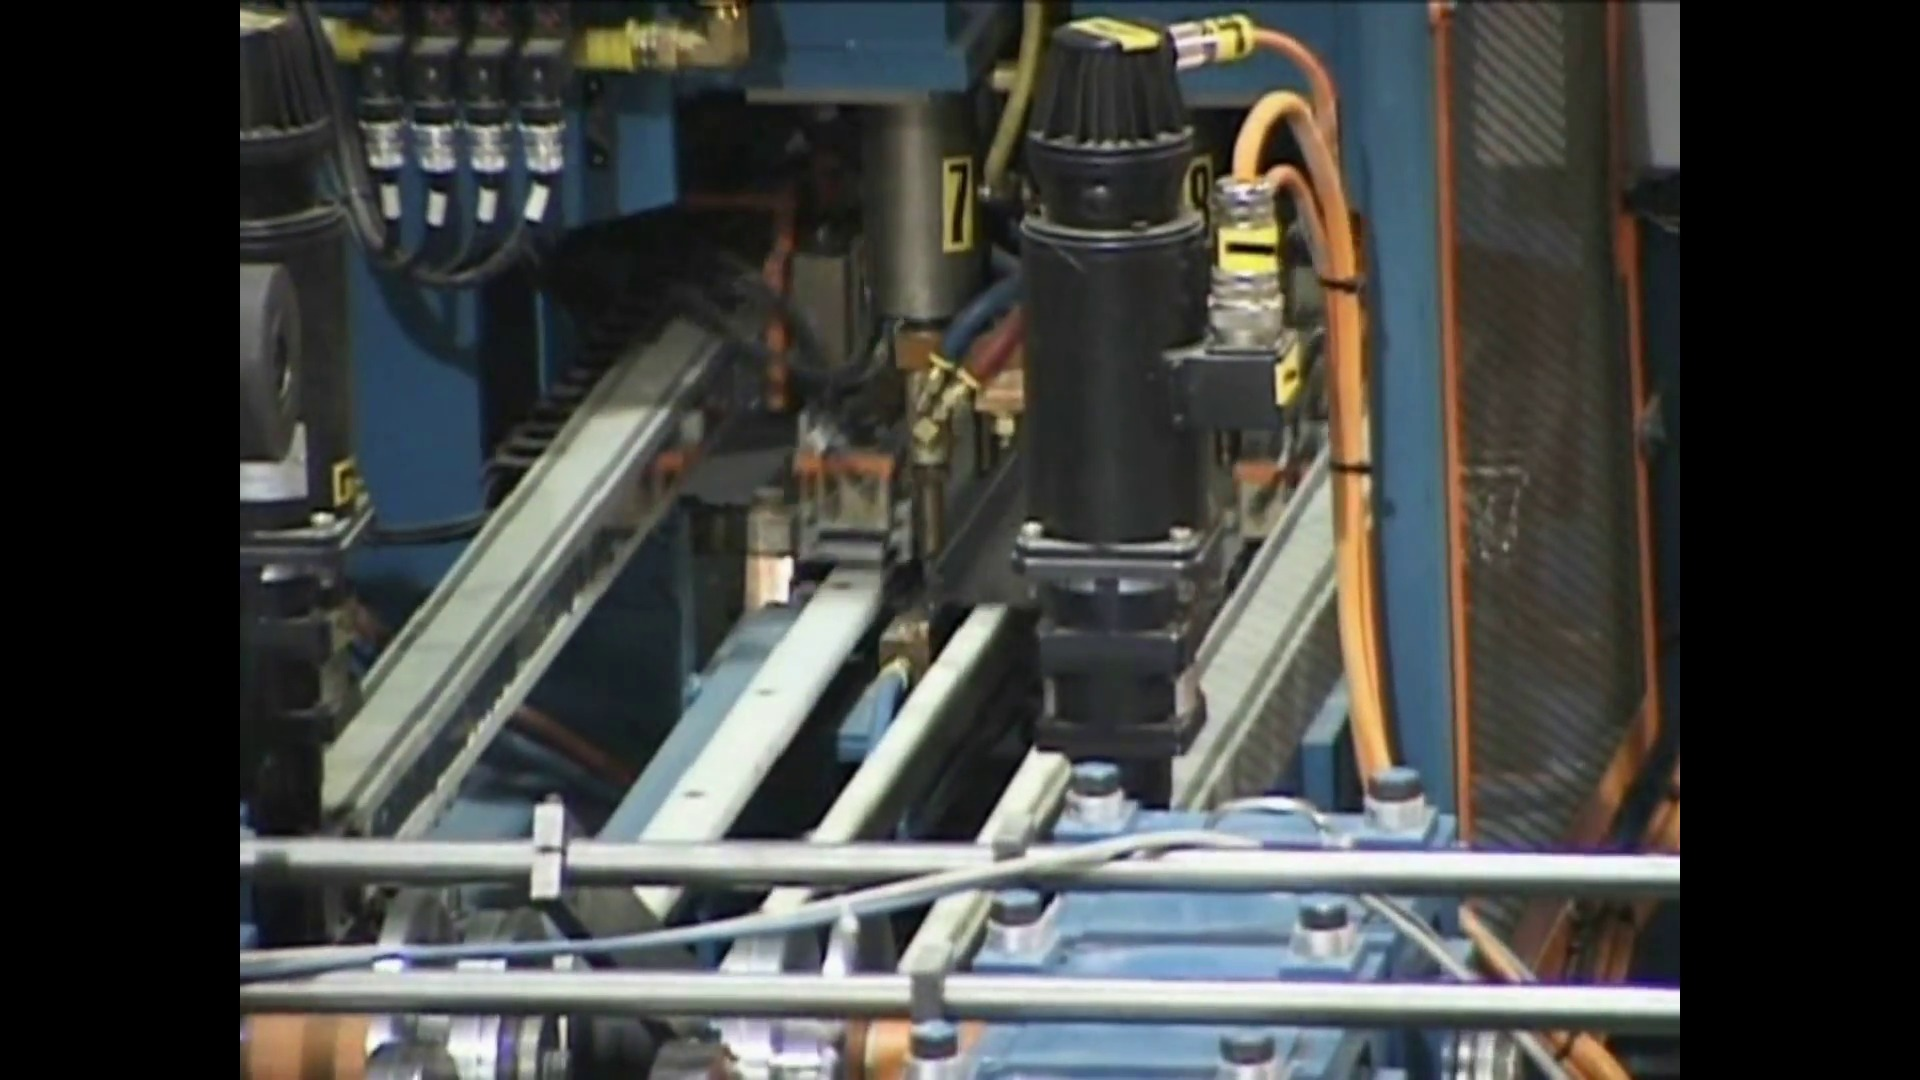 The Bradbury Group Automated Production Systems